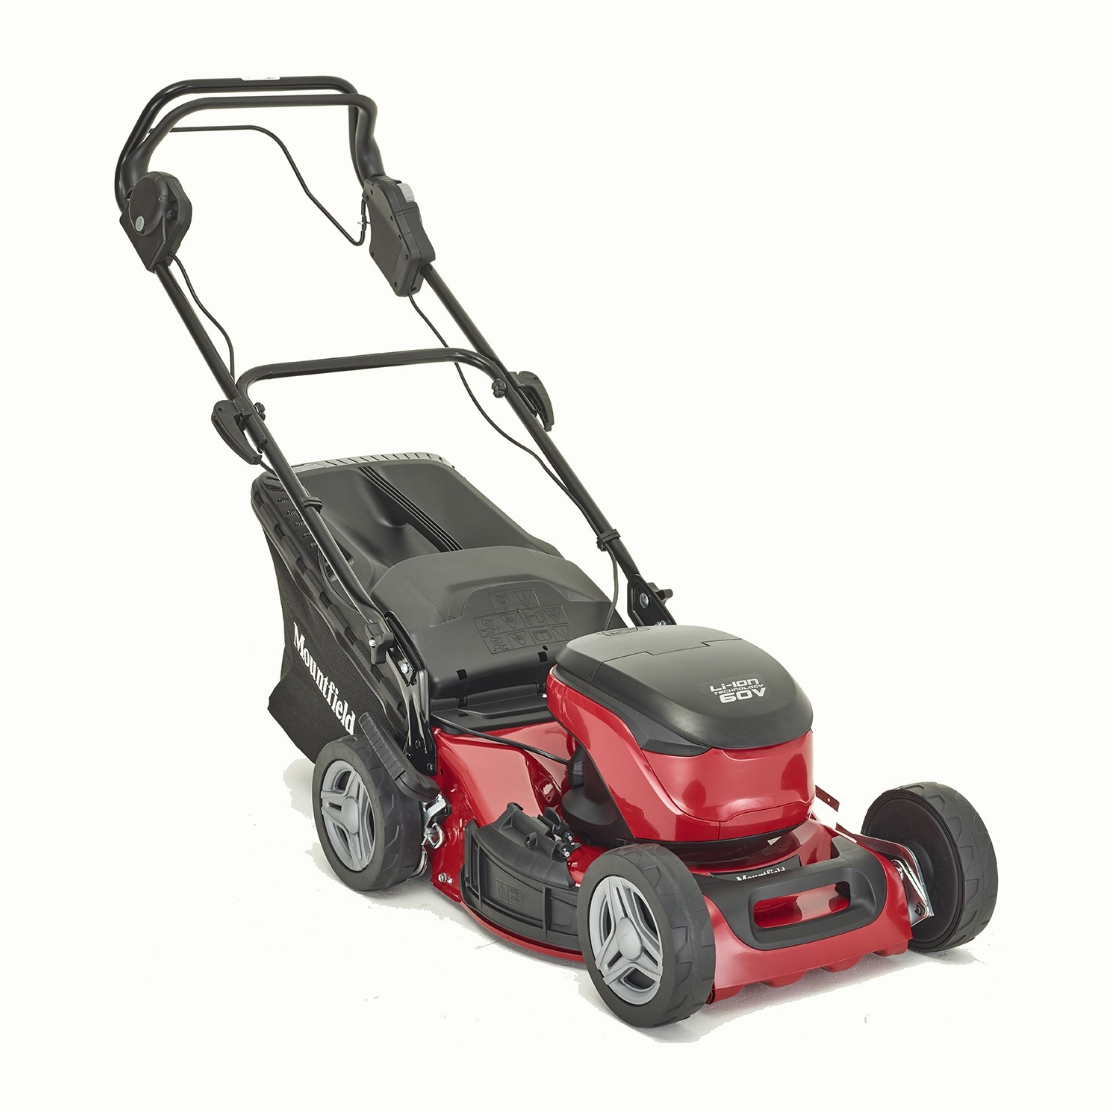 Mountfield S42 PD Li battery lawn mower (41cm cut)